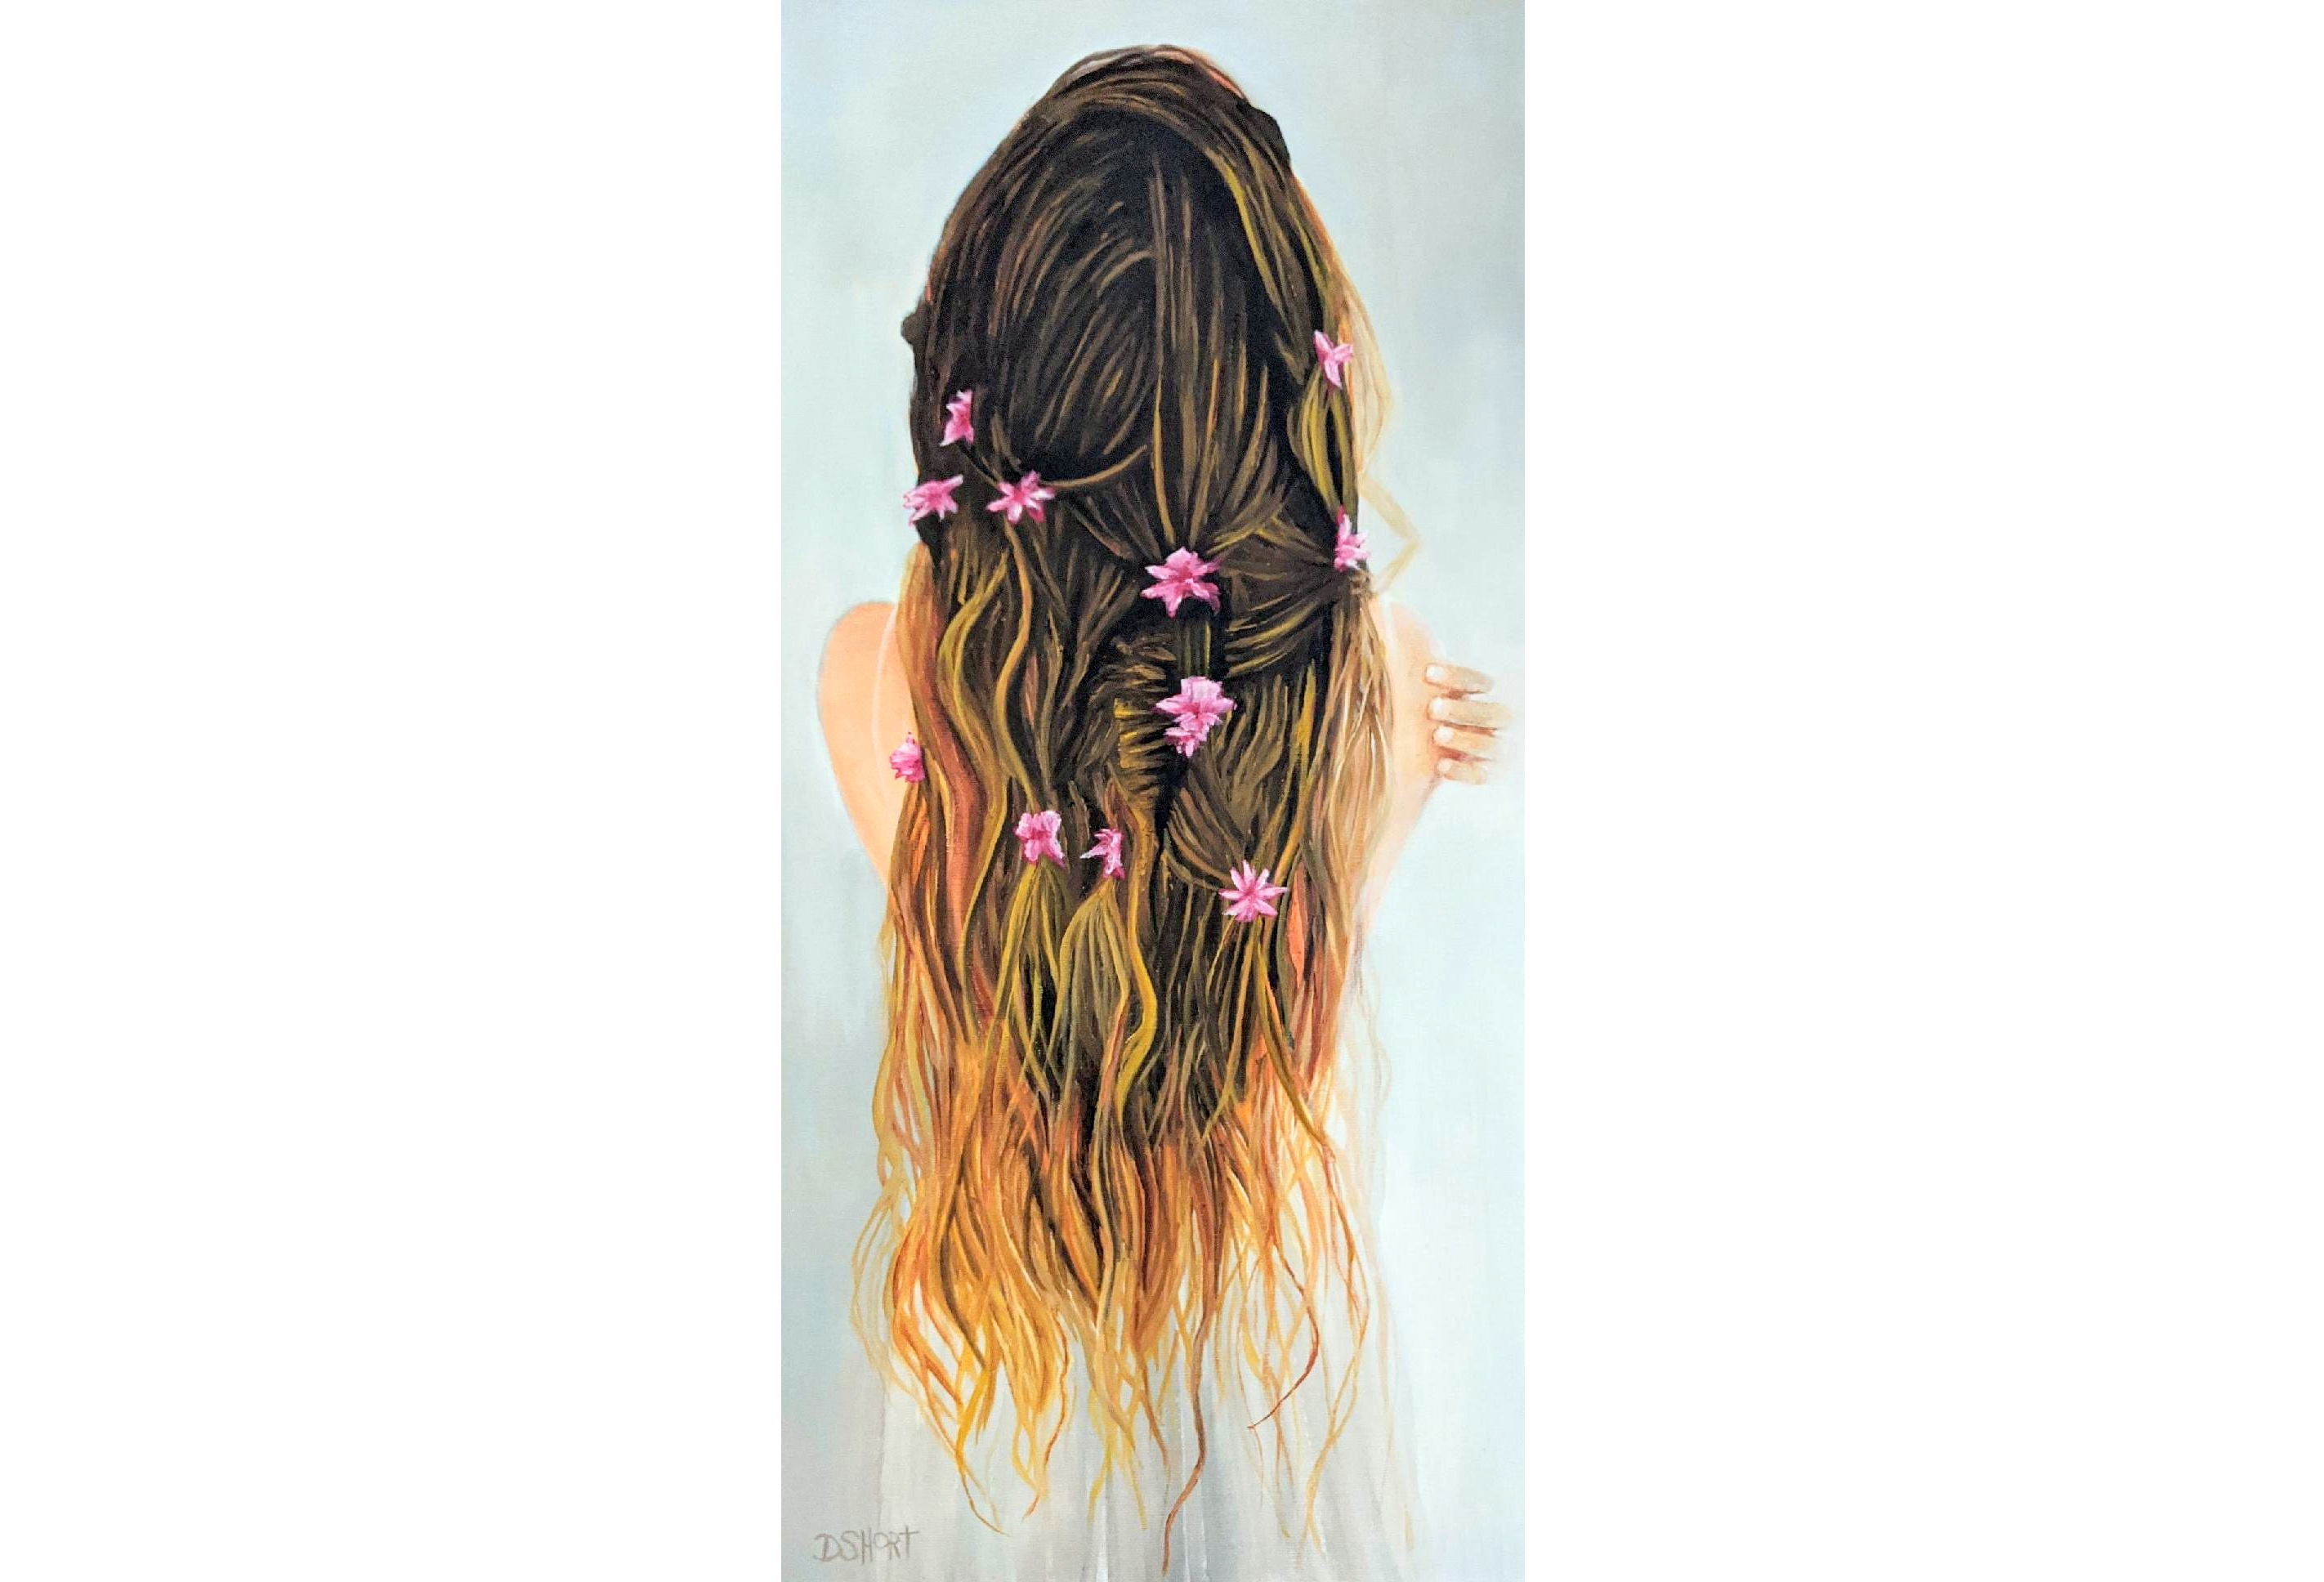 David Short_Be Sure To Wear_ flowers in hair_figurative_Fantastical Florals_Richmond artist